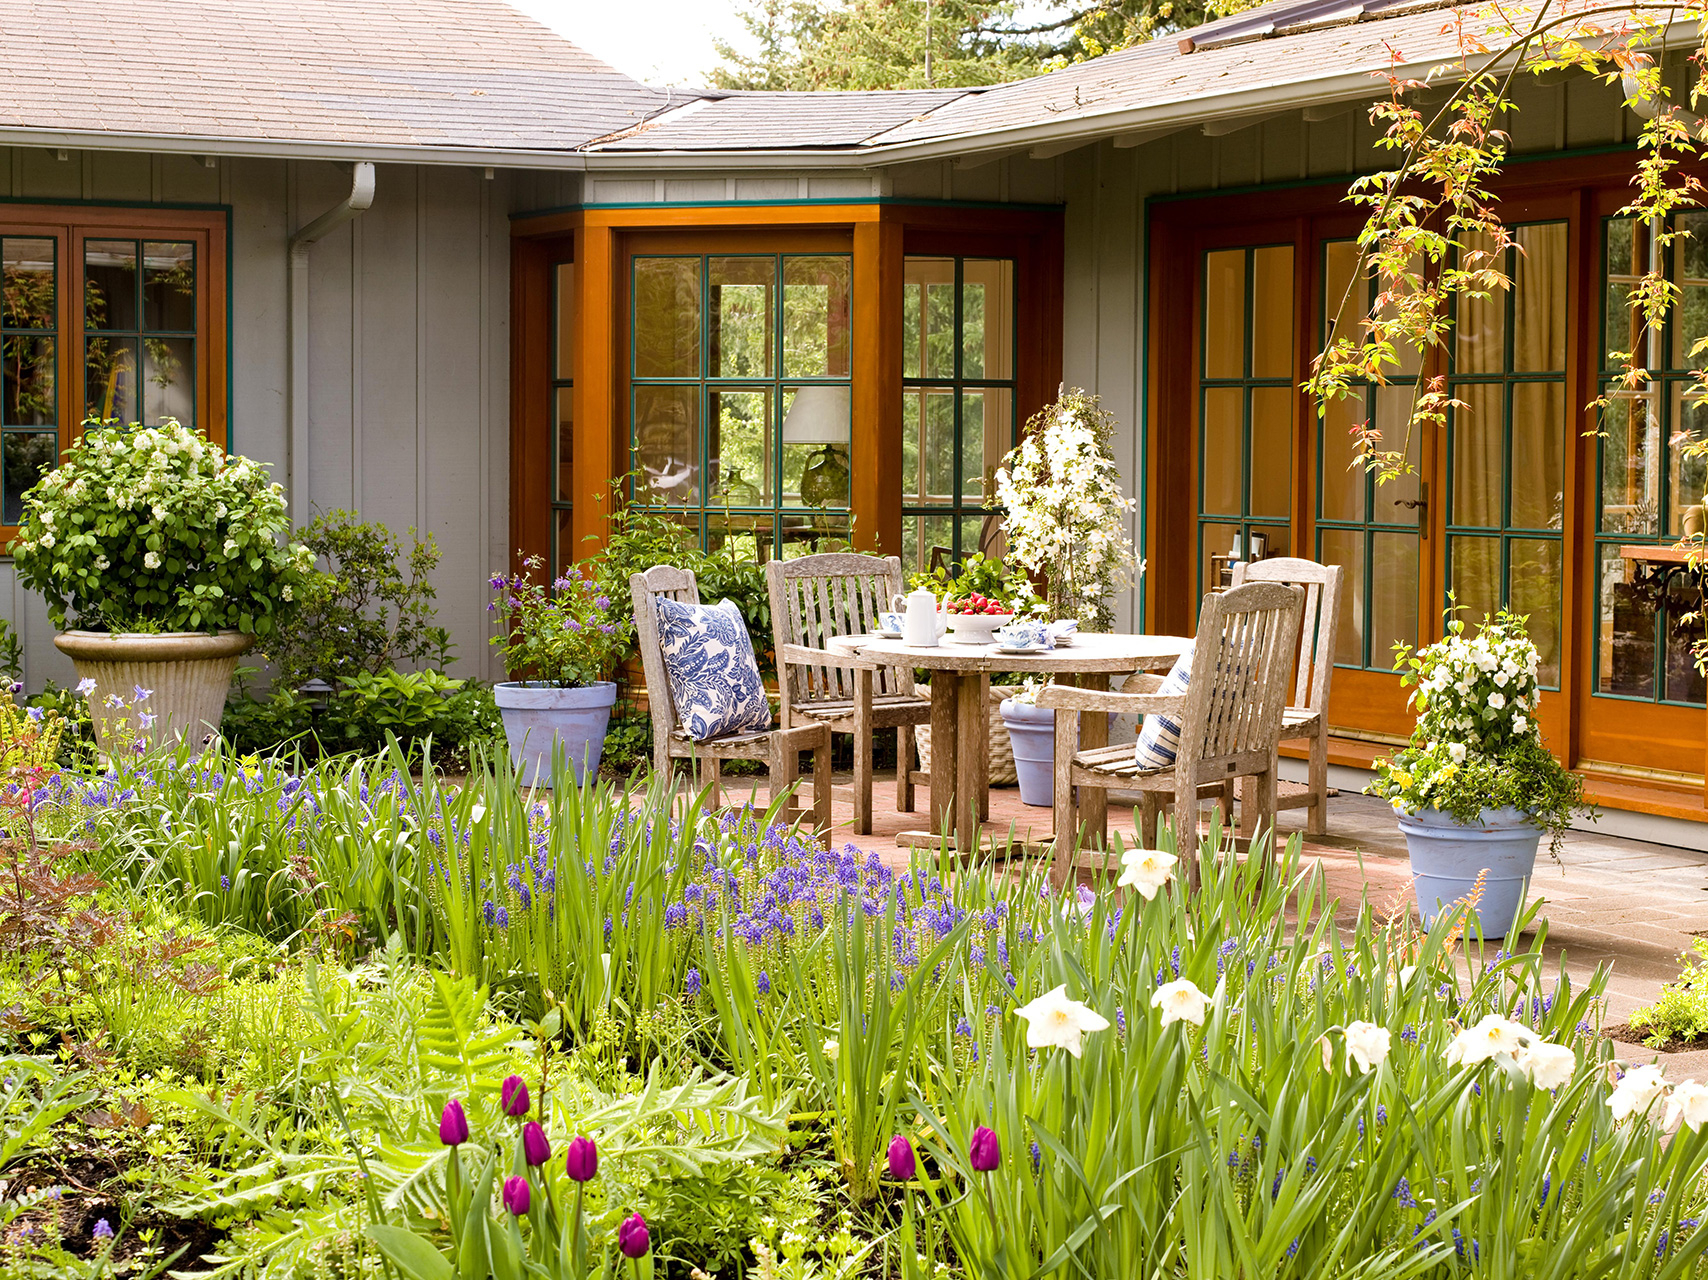 7 Landscaping Ideas For Beginners Better Homes Gardens within Plants For Backyard Landscaping